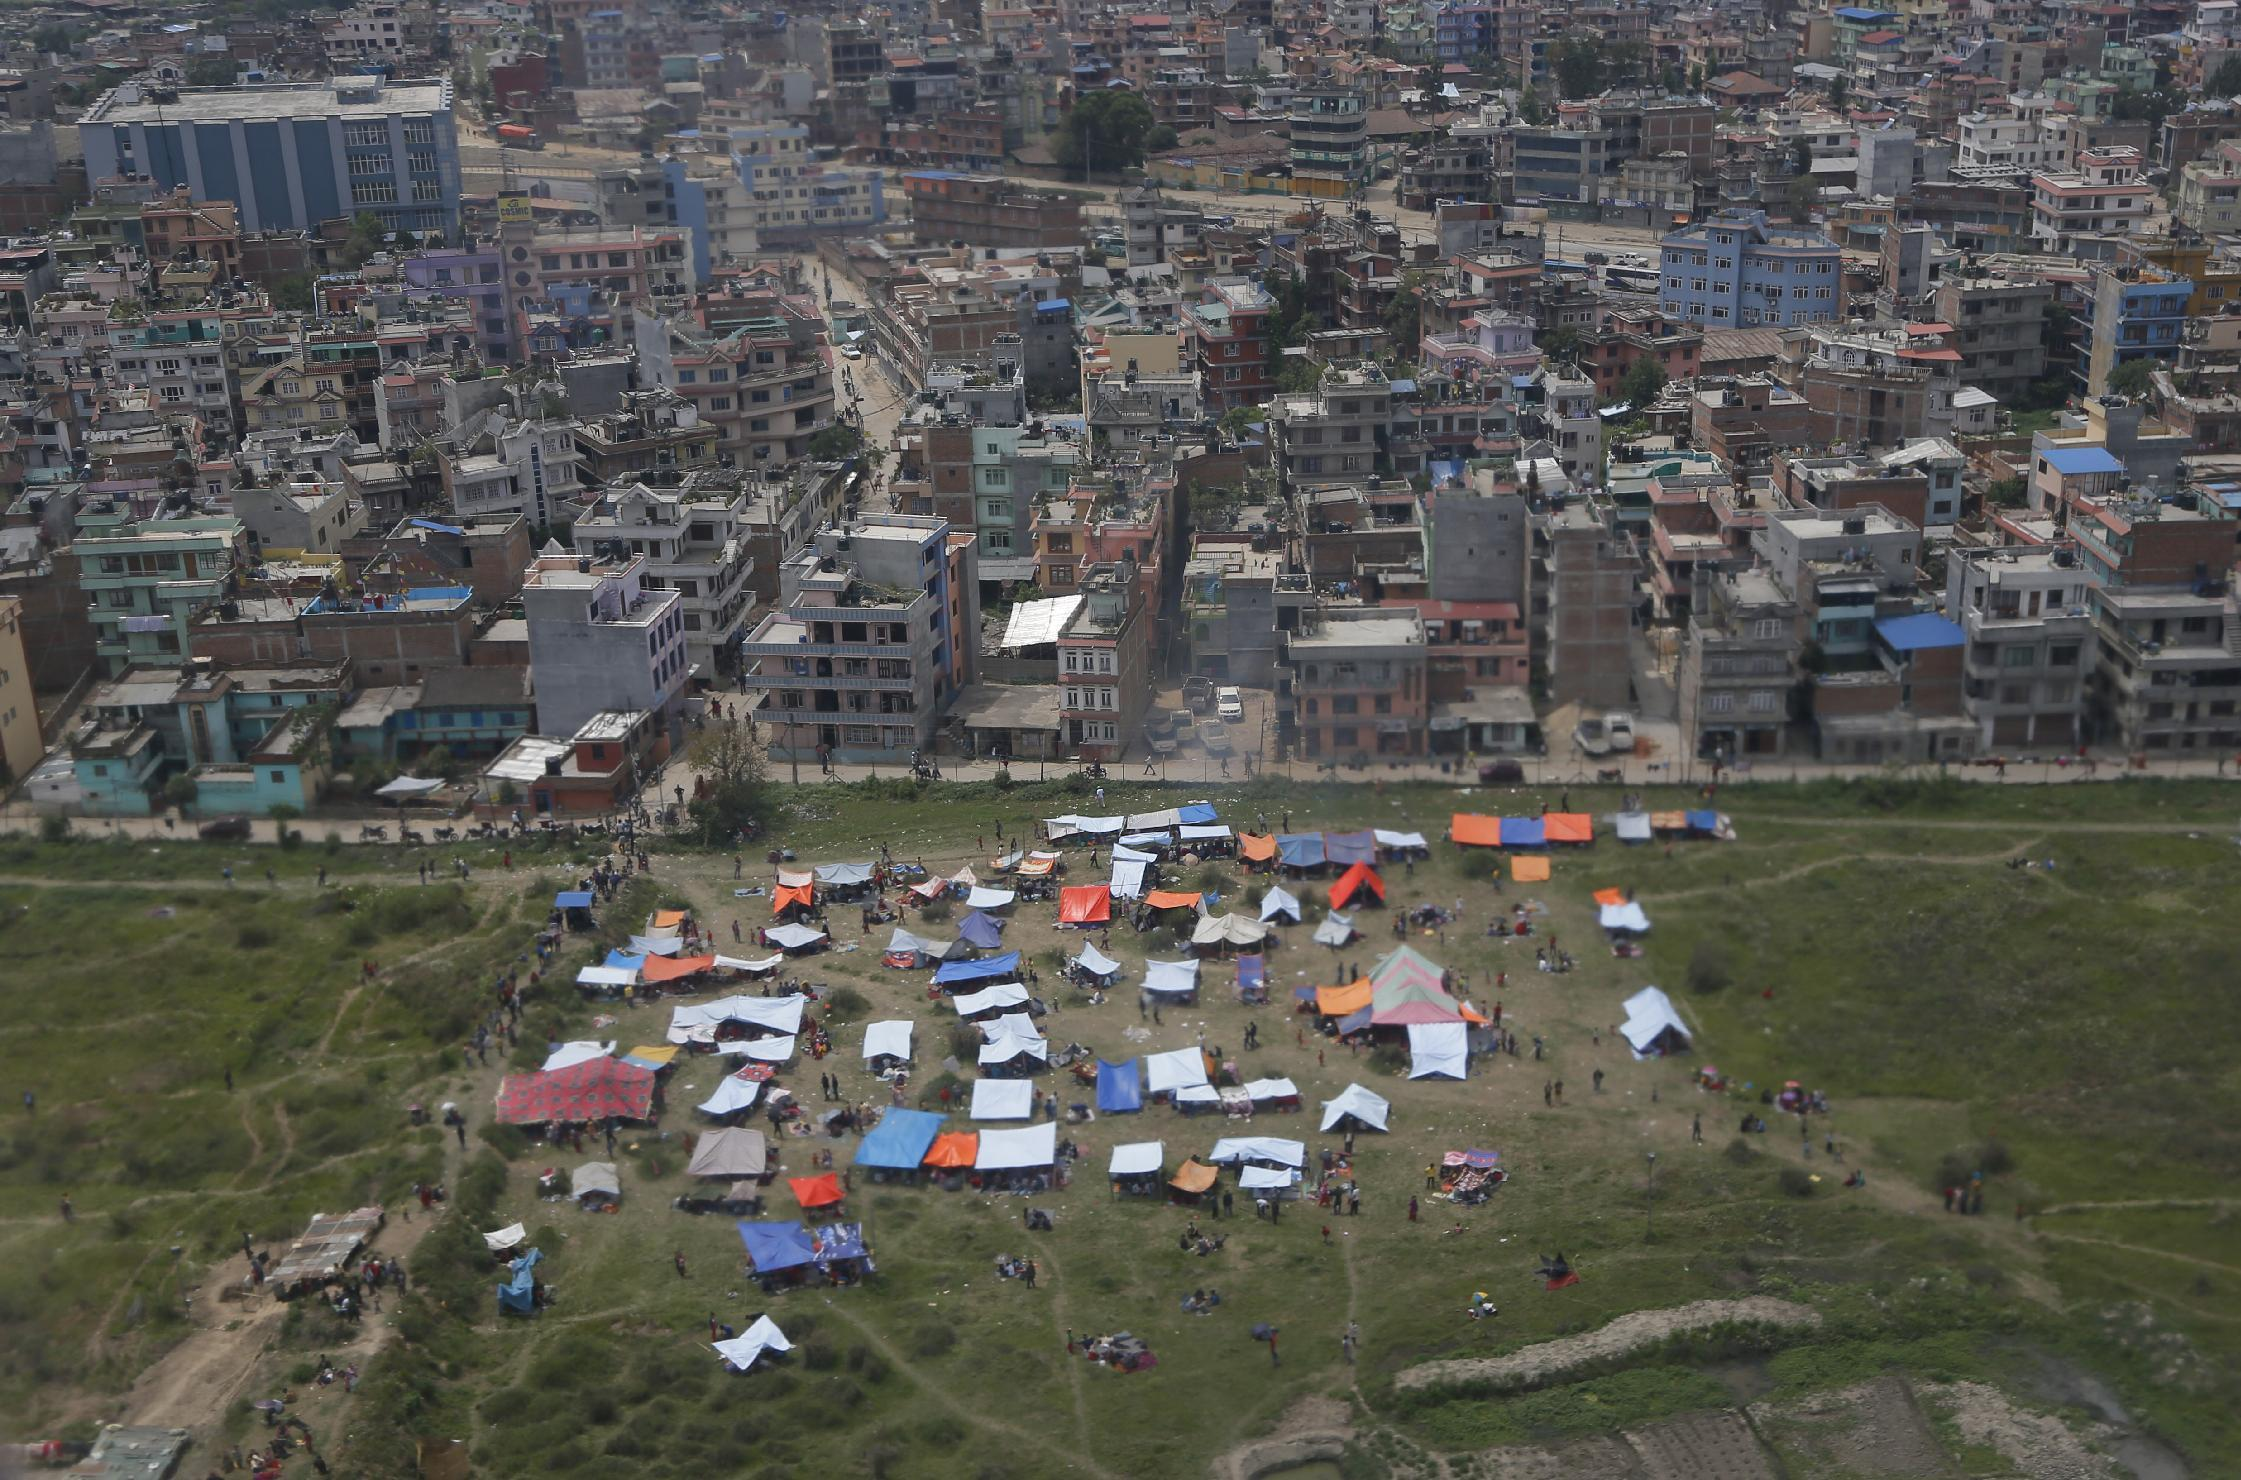 Quake agony revealed quietly on trip from Nepal airport